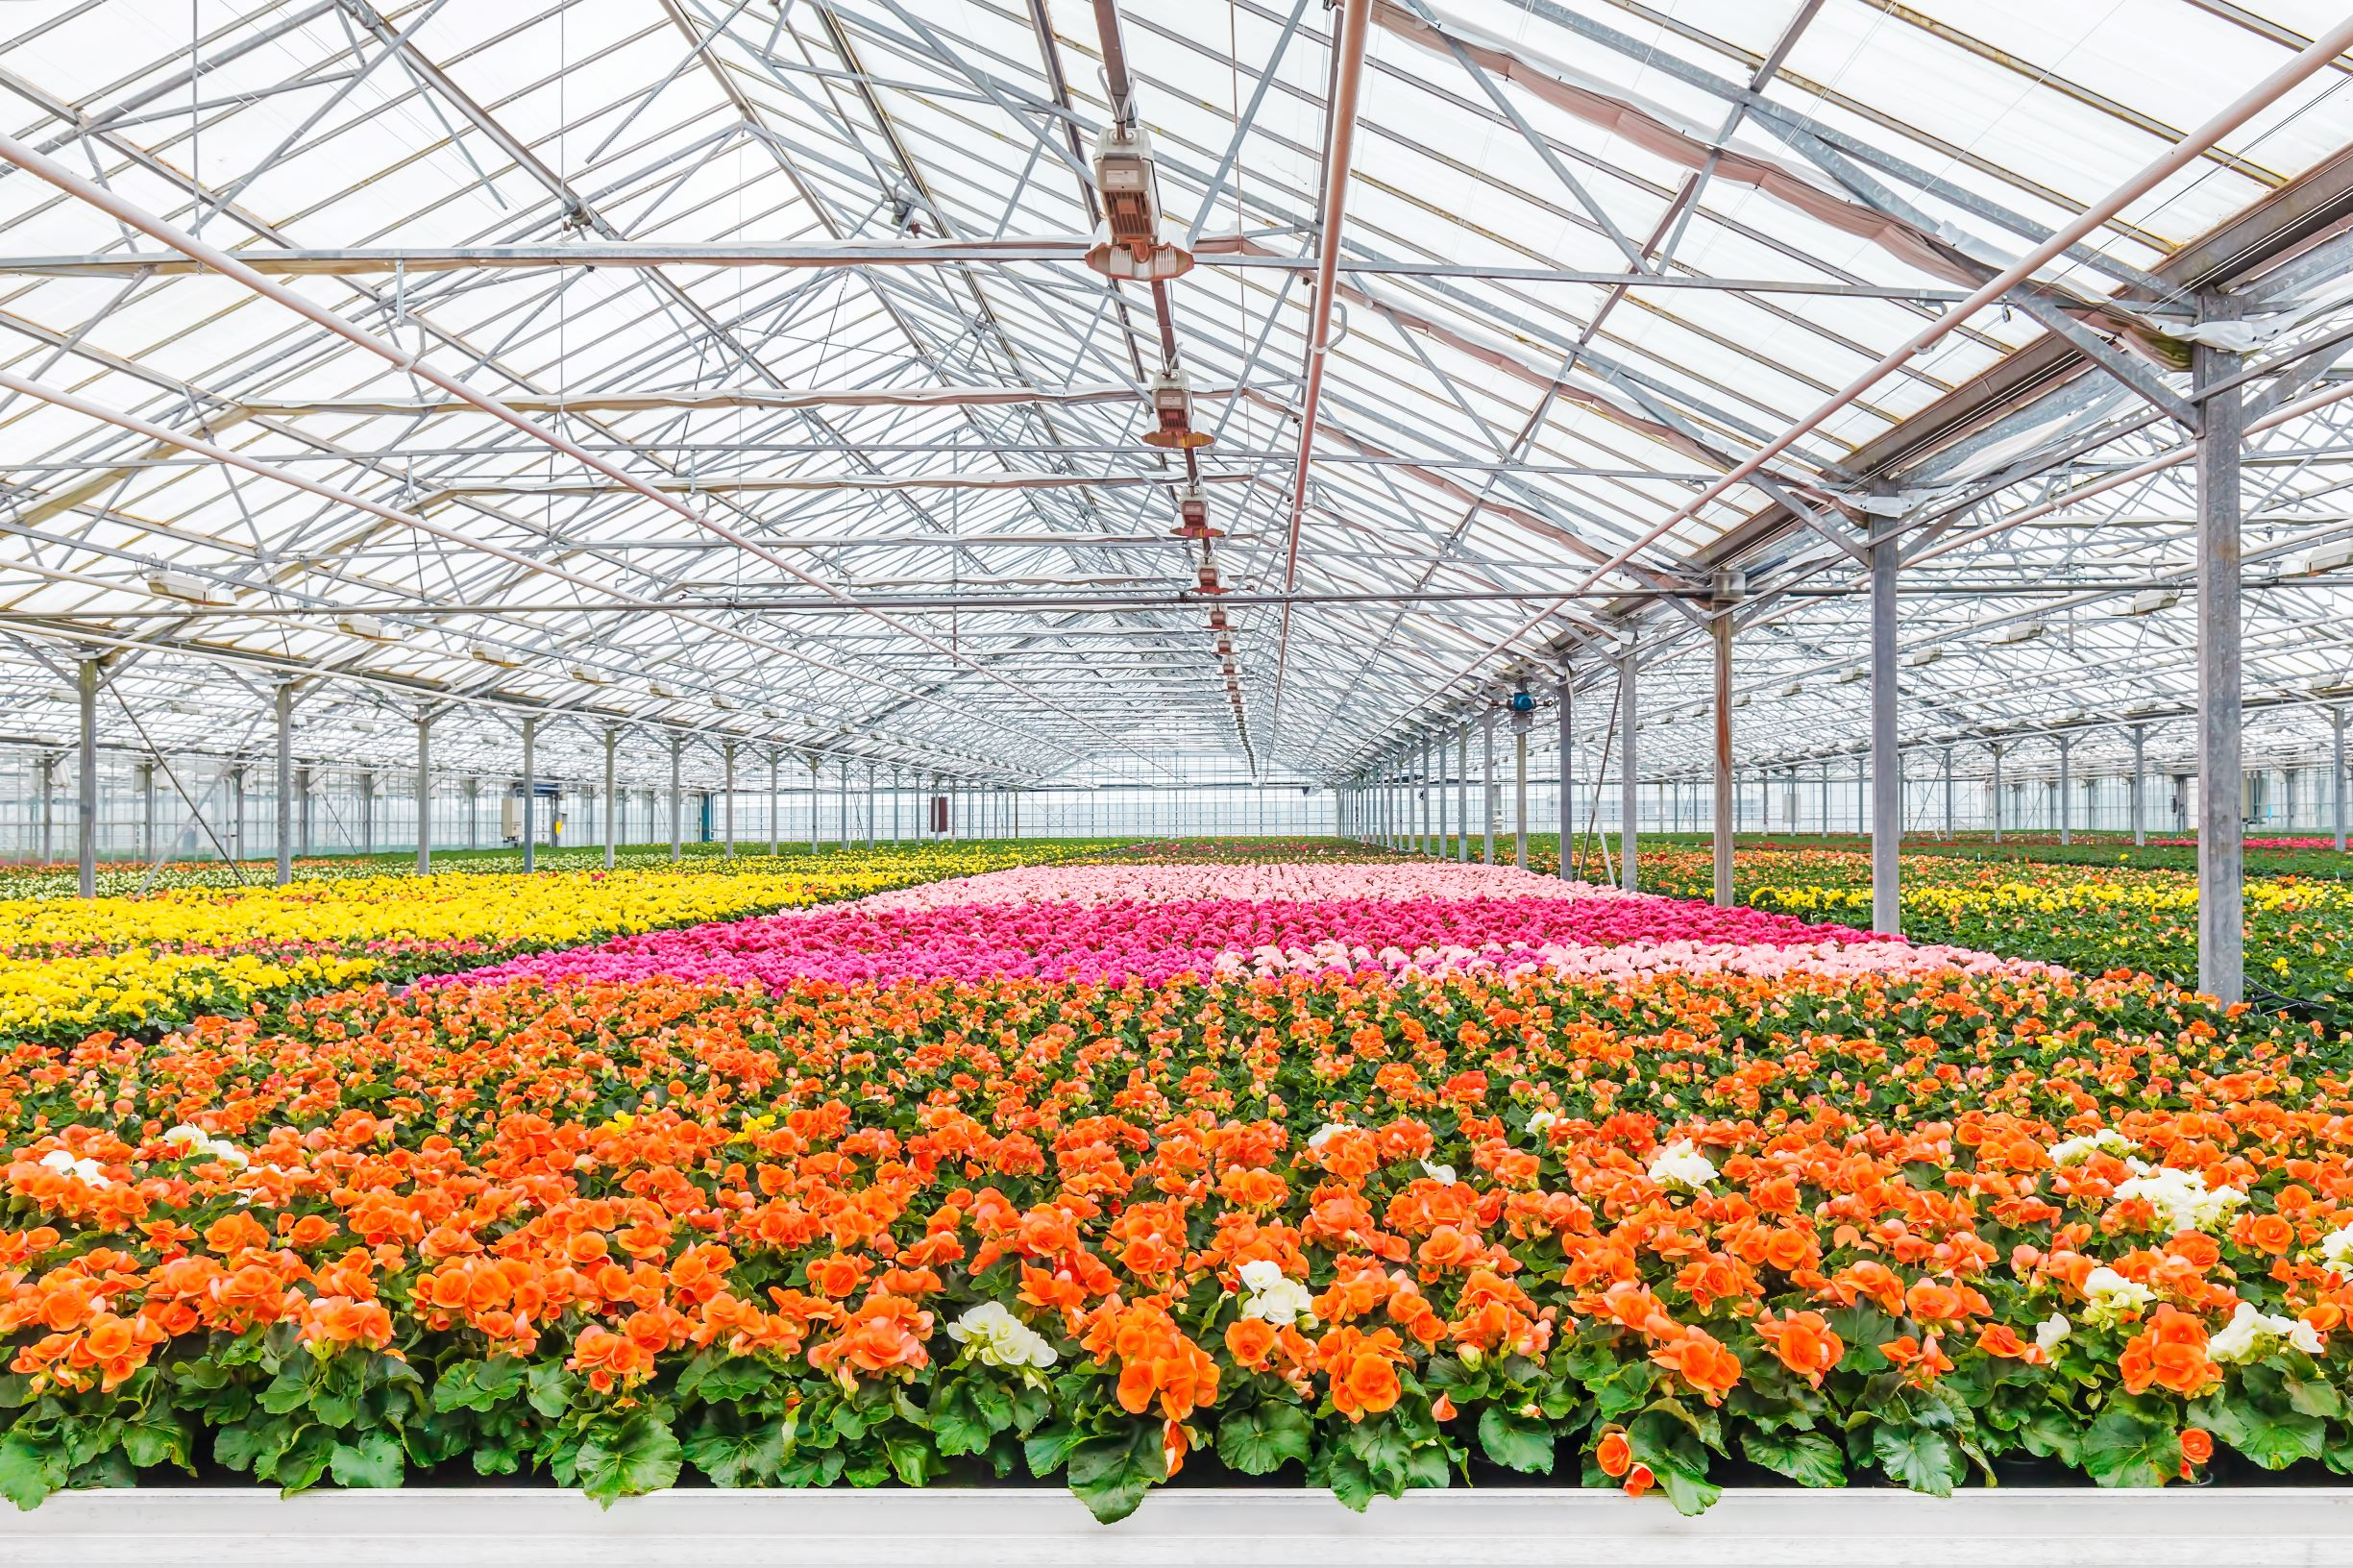 Floral industry companies